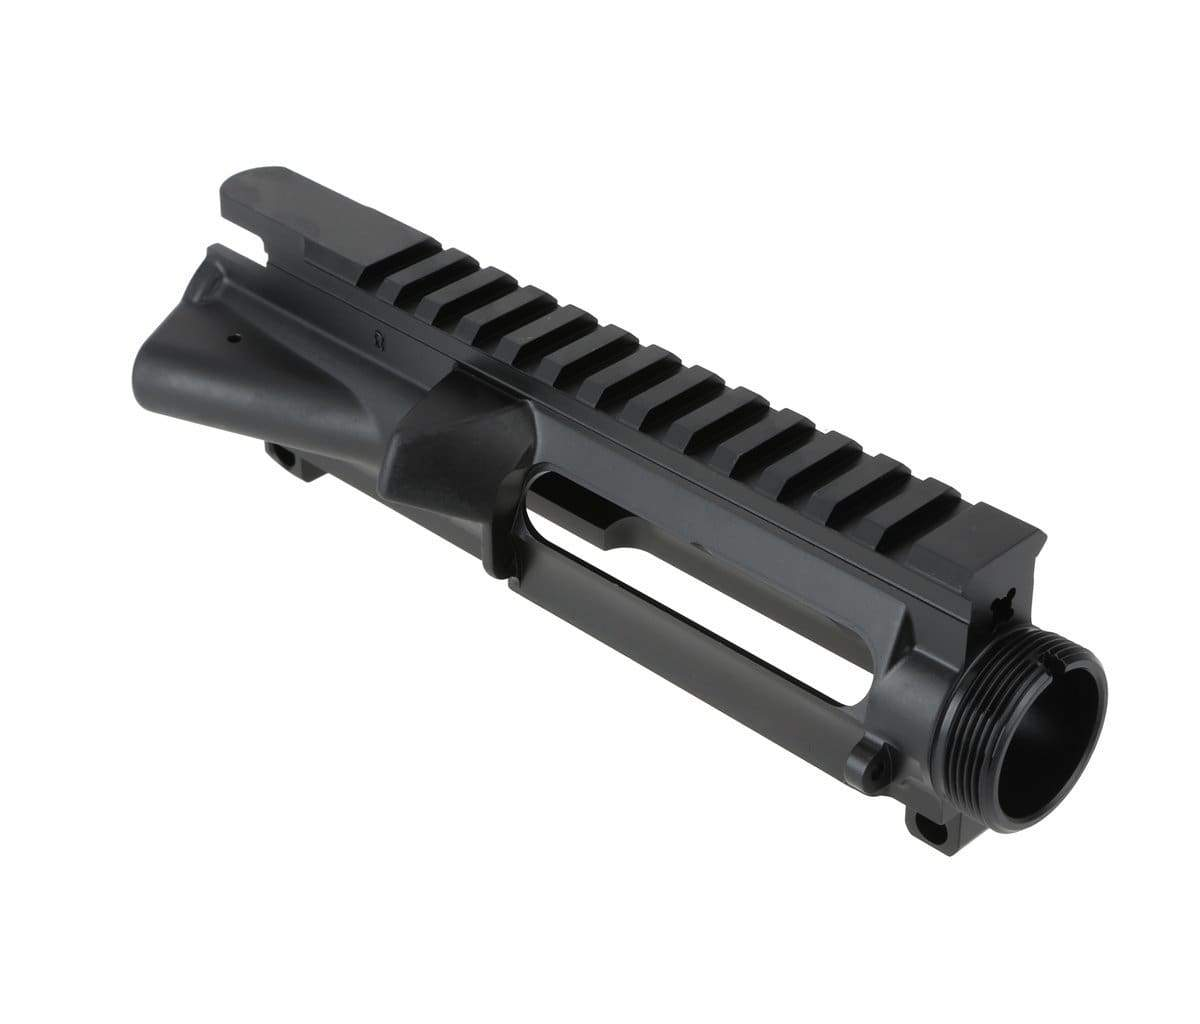 Anderson AR-15 Stripped Upper Receiver